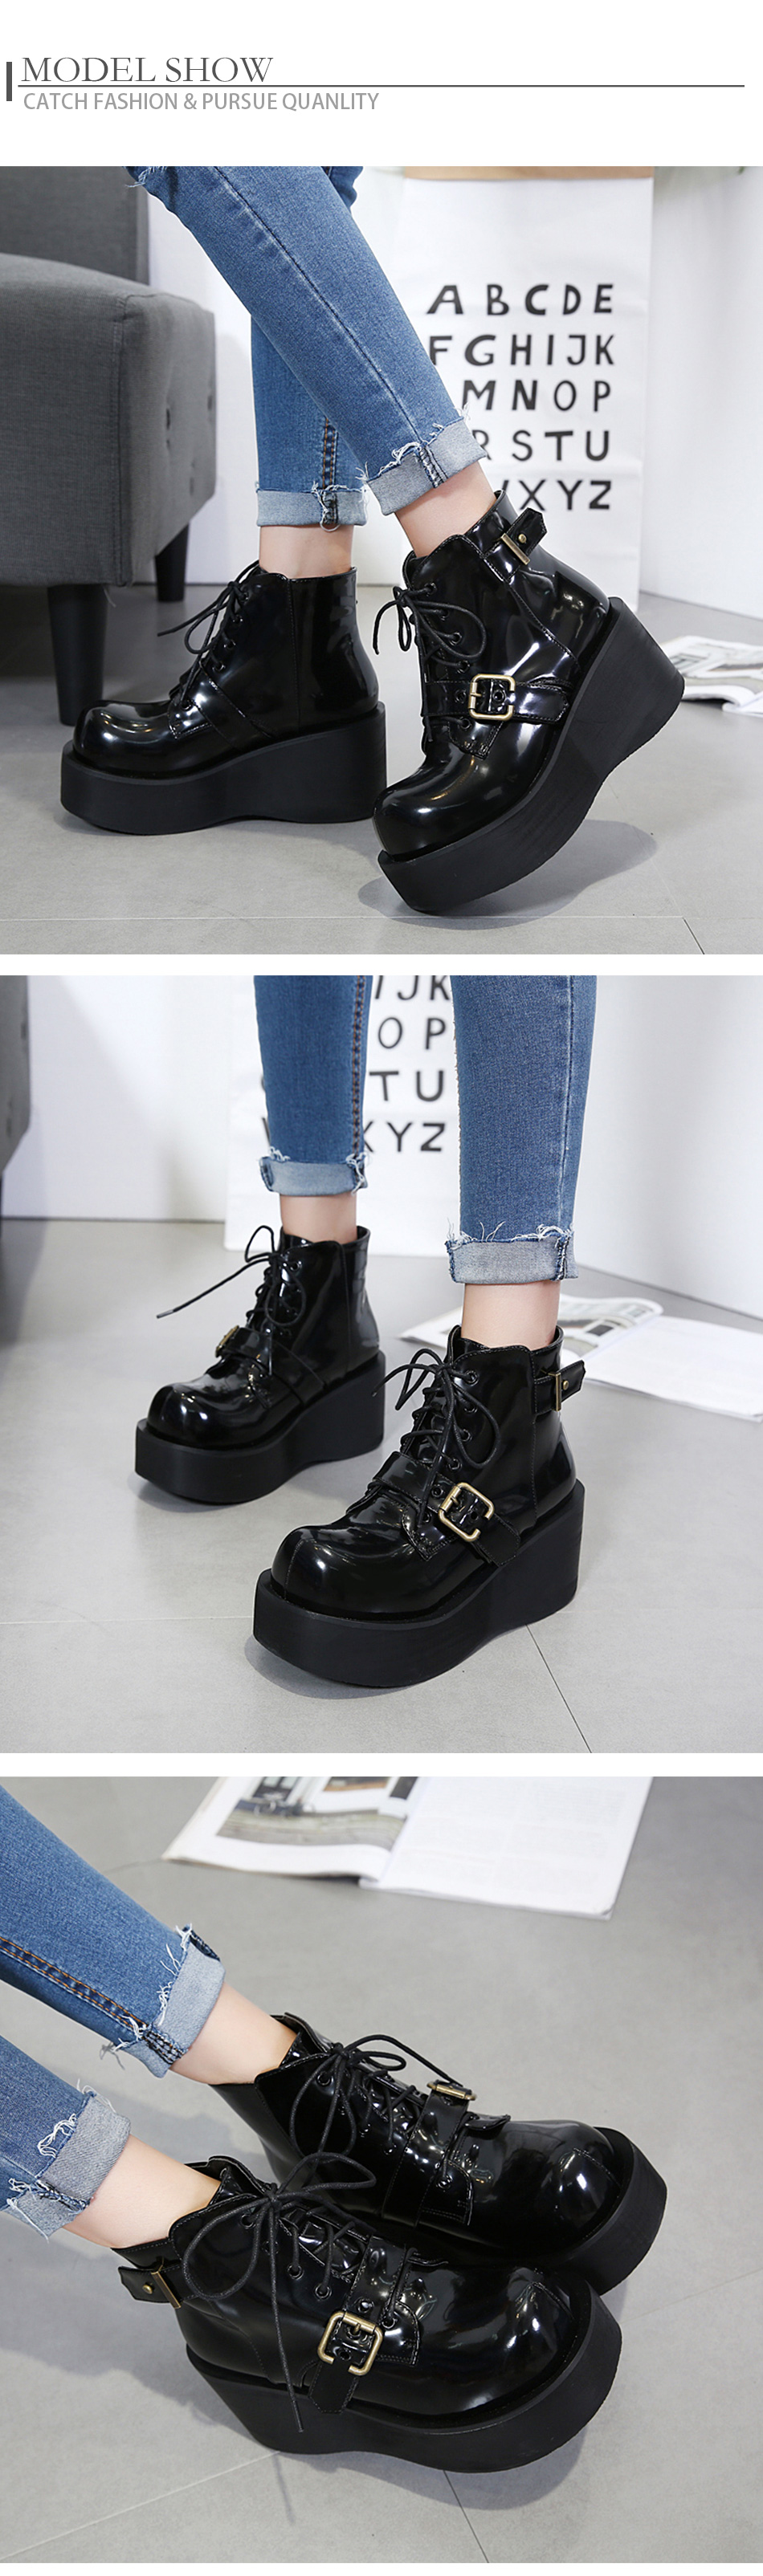 ankle boots,ankle boots shoes